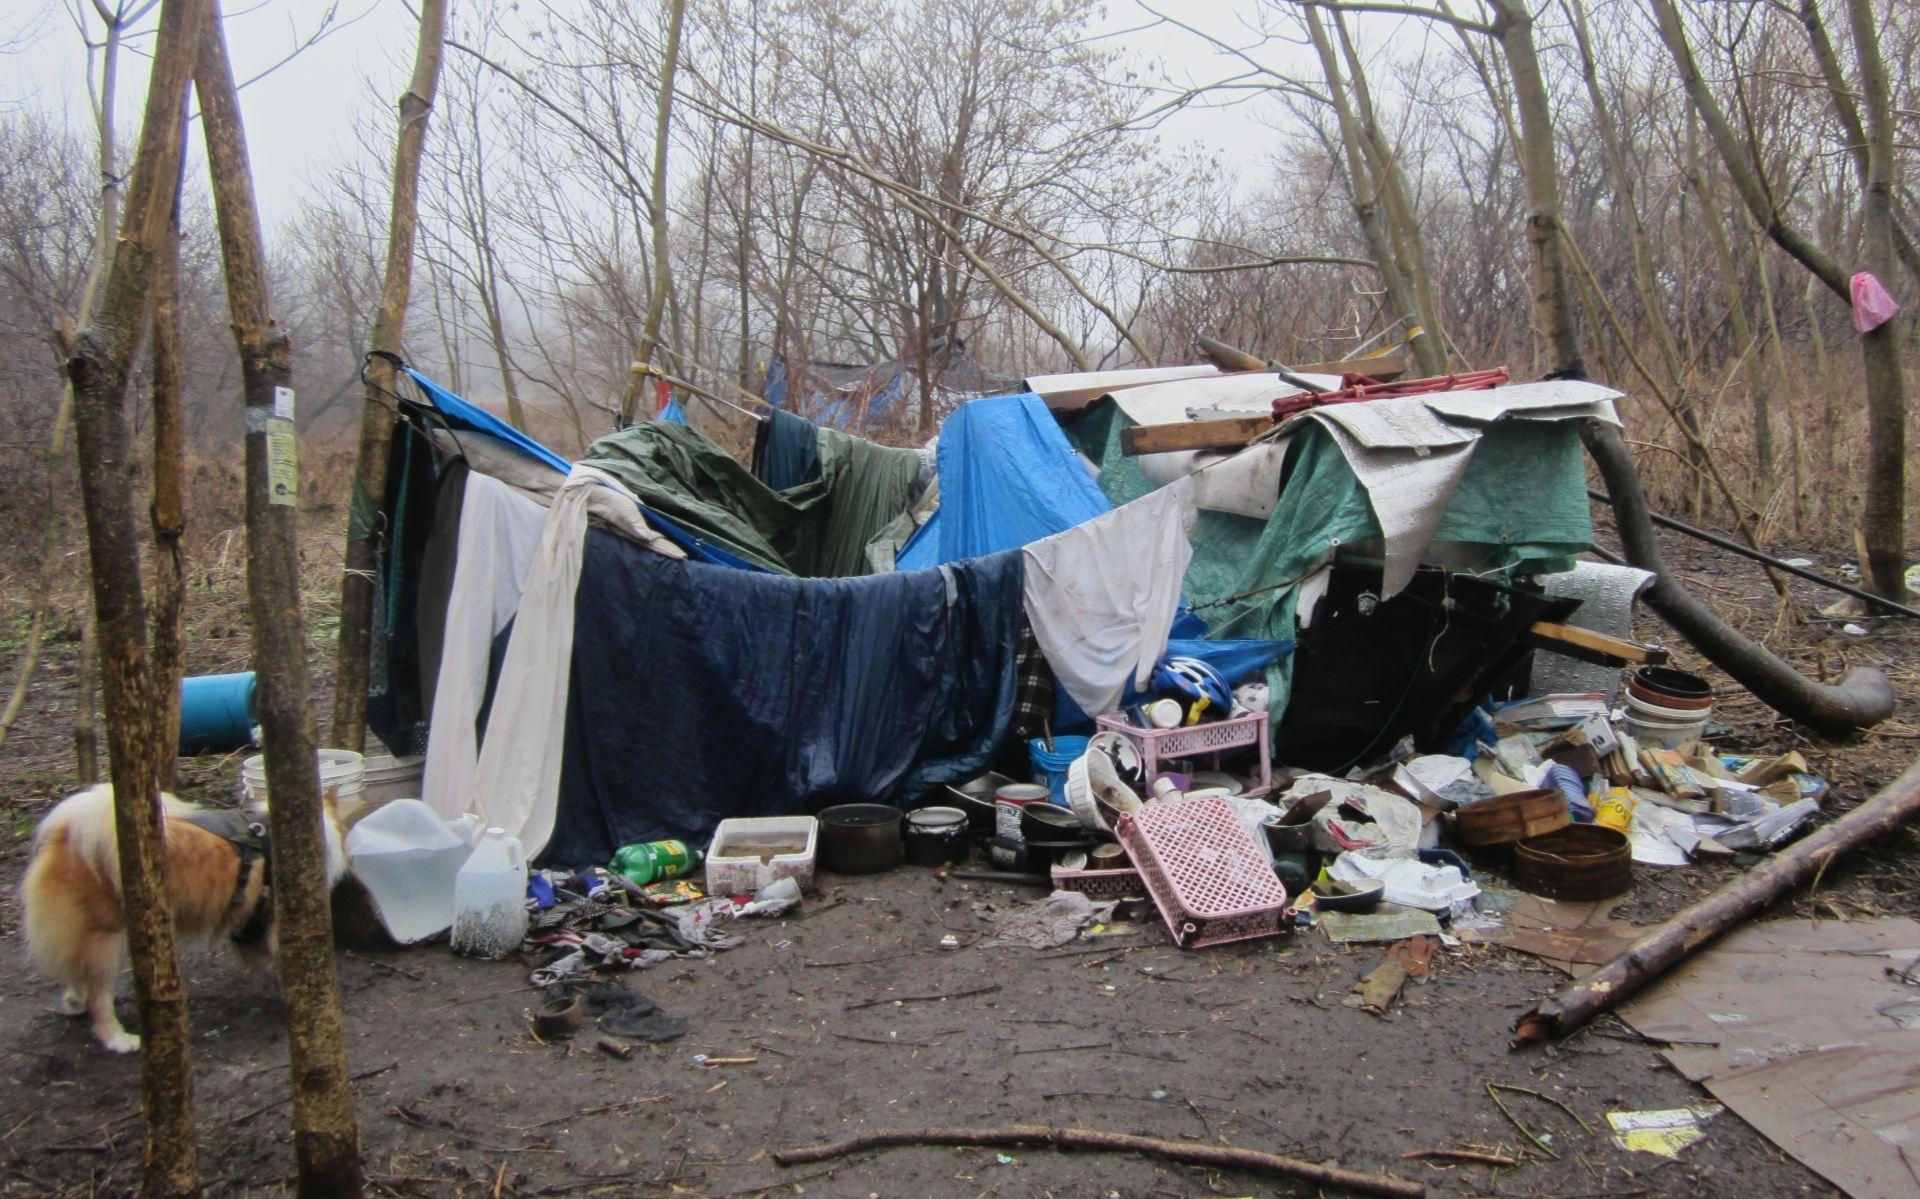 Homeless camp on Don Valley in Toronto